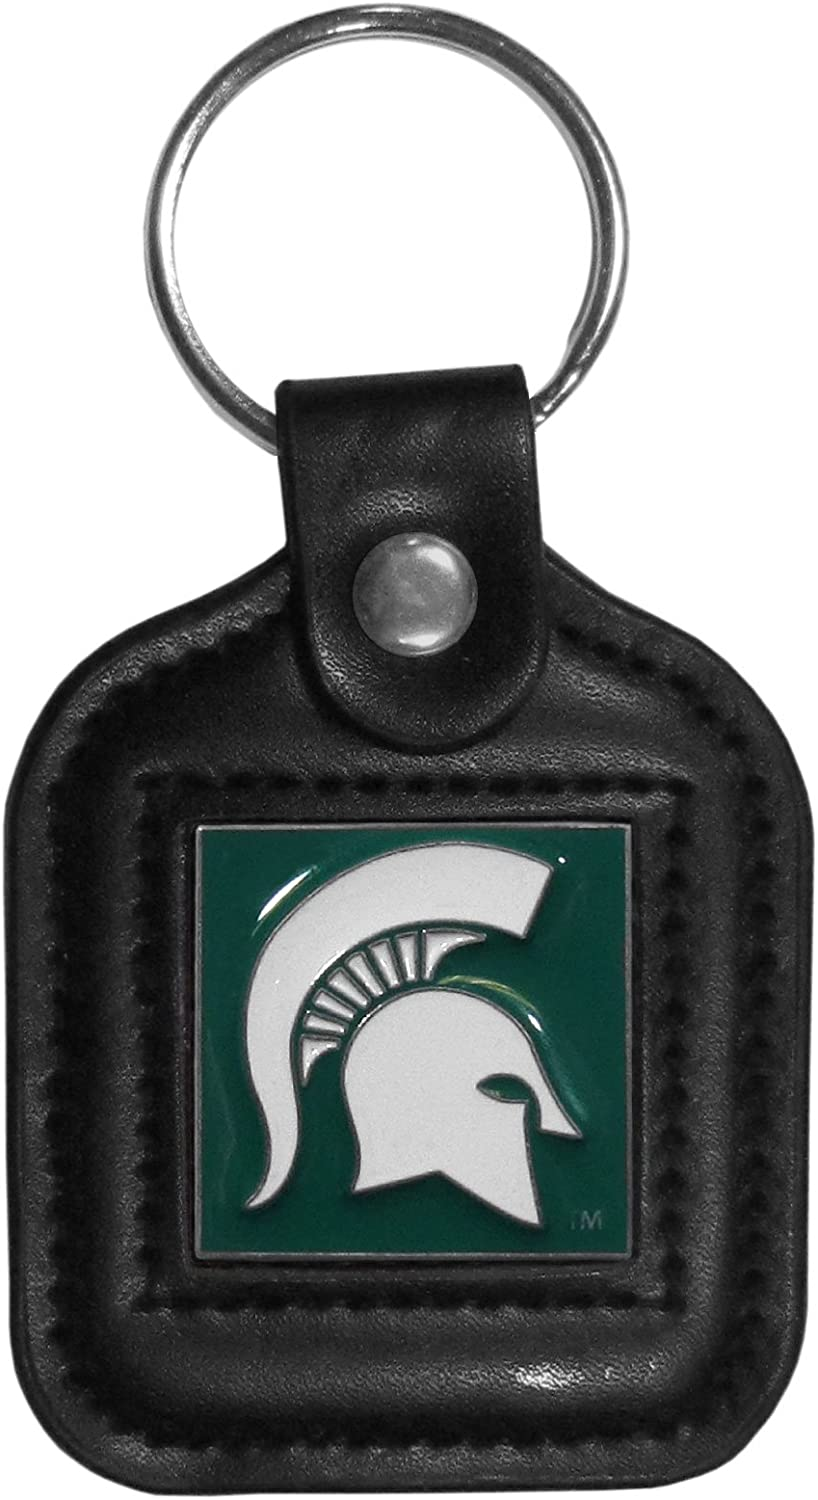 NCAA Siskiyou Sports Fan Shop Michigan State Spartans Square Leather Key Chain One Size Black : Sports & Outdoors